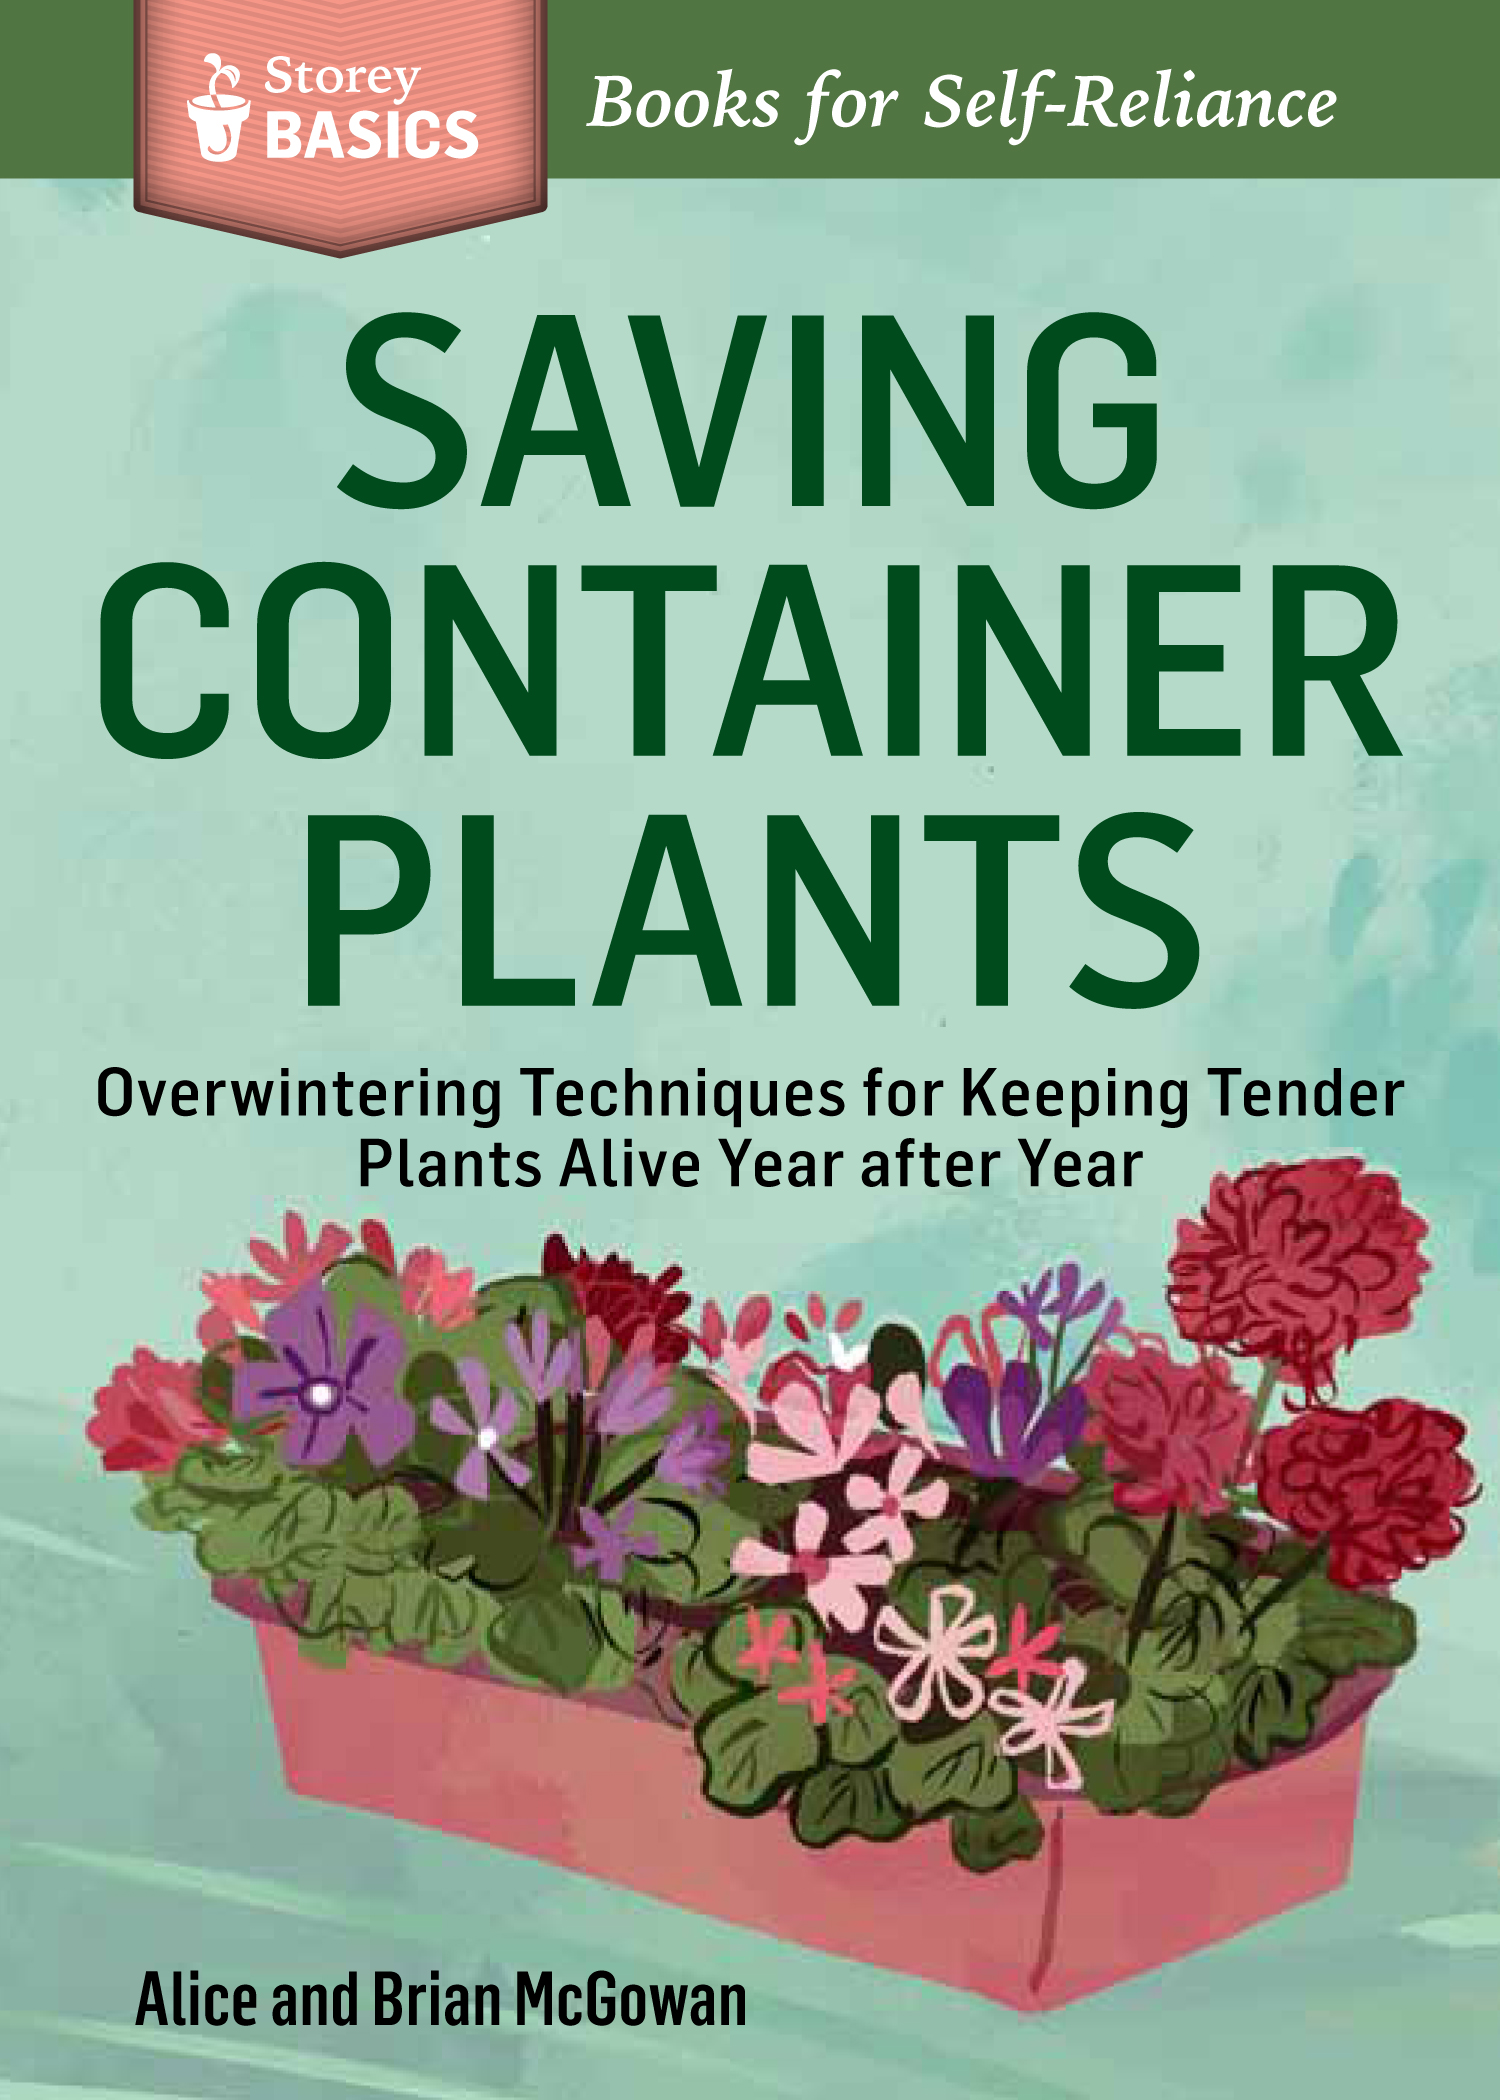 Saving Container Plants Overwintering Techniques for Keeping Tender Plants Alive Year after Year. A Storey BASICS® Title - Brian McGowan